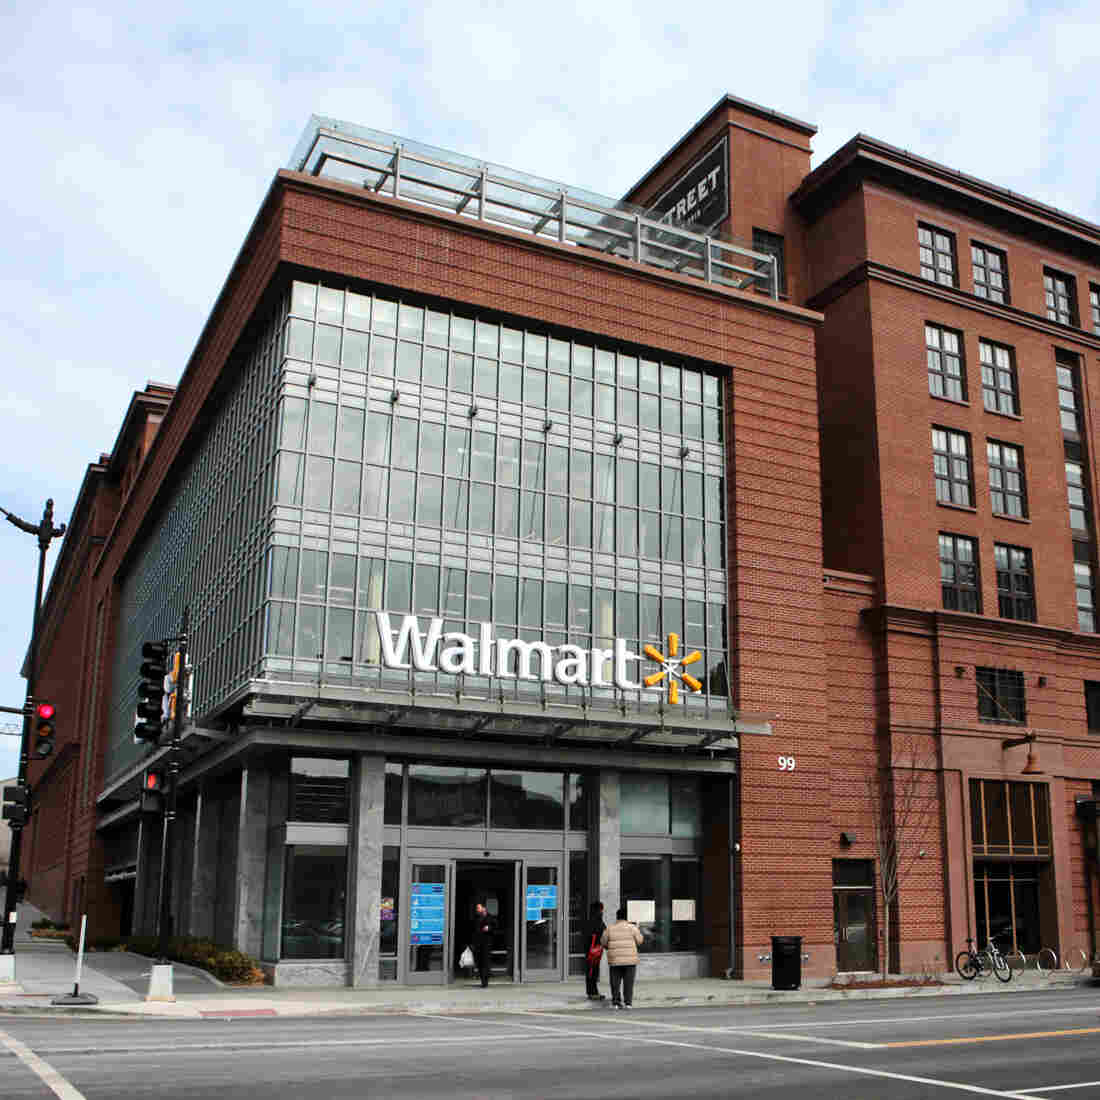 Retailers, including Wal-Mart, are trying to adapt their models to suit urban areas, including this mixed-use retail and residential development in Washington, D.C.